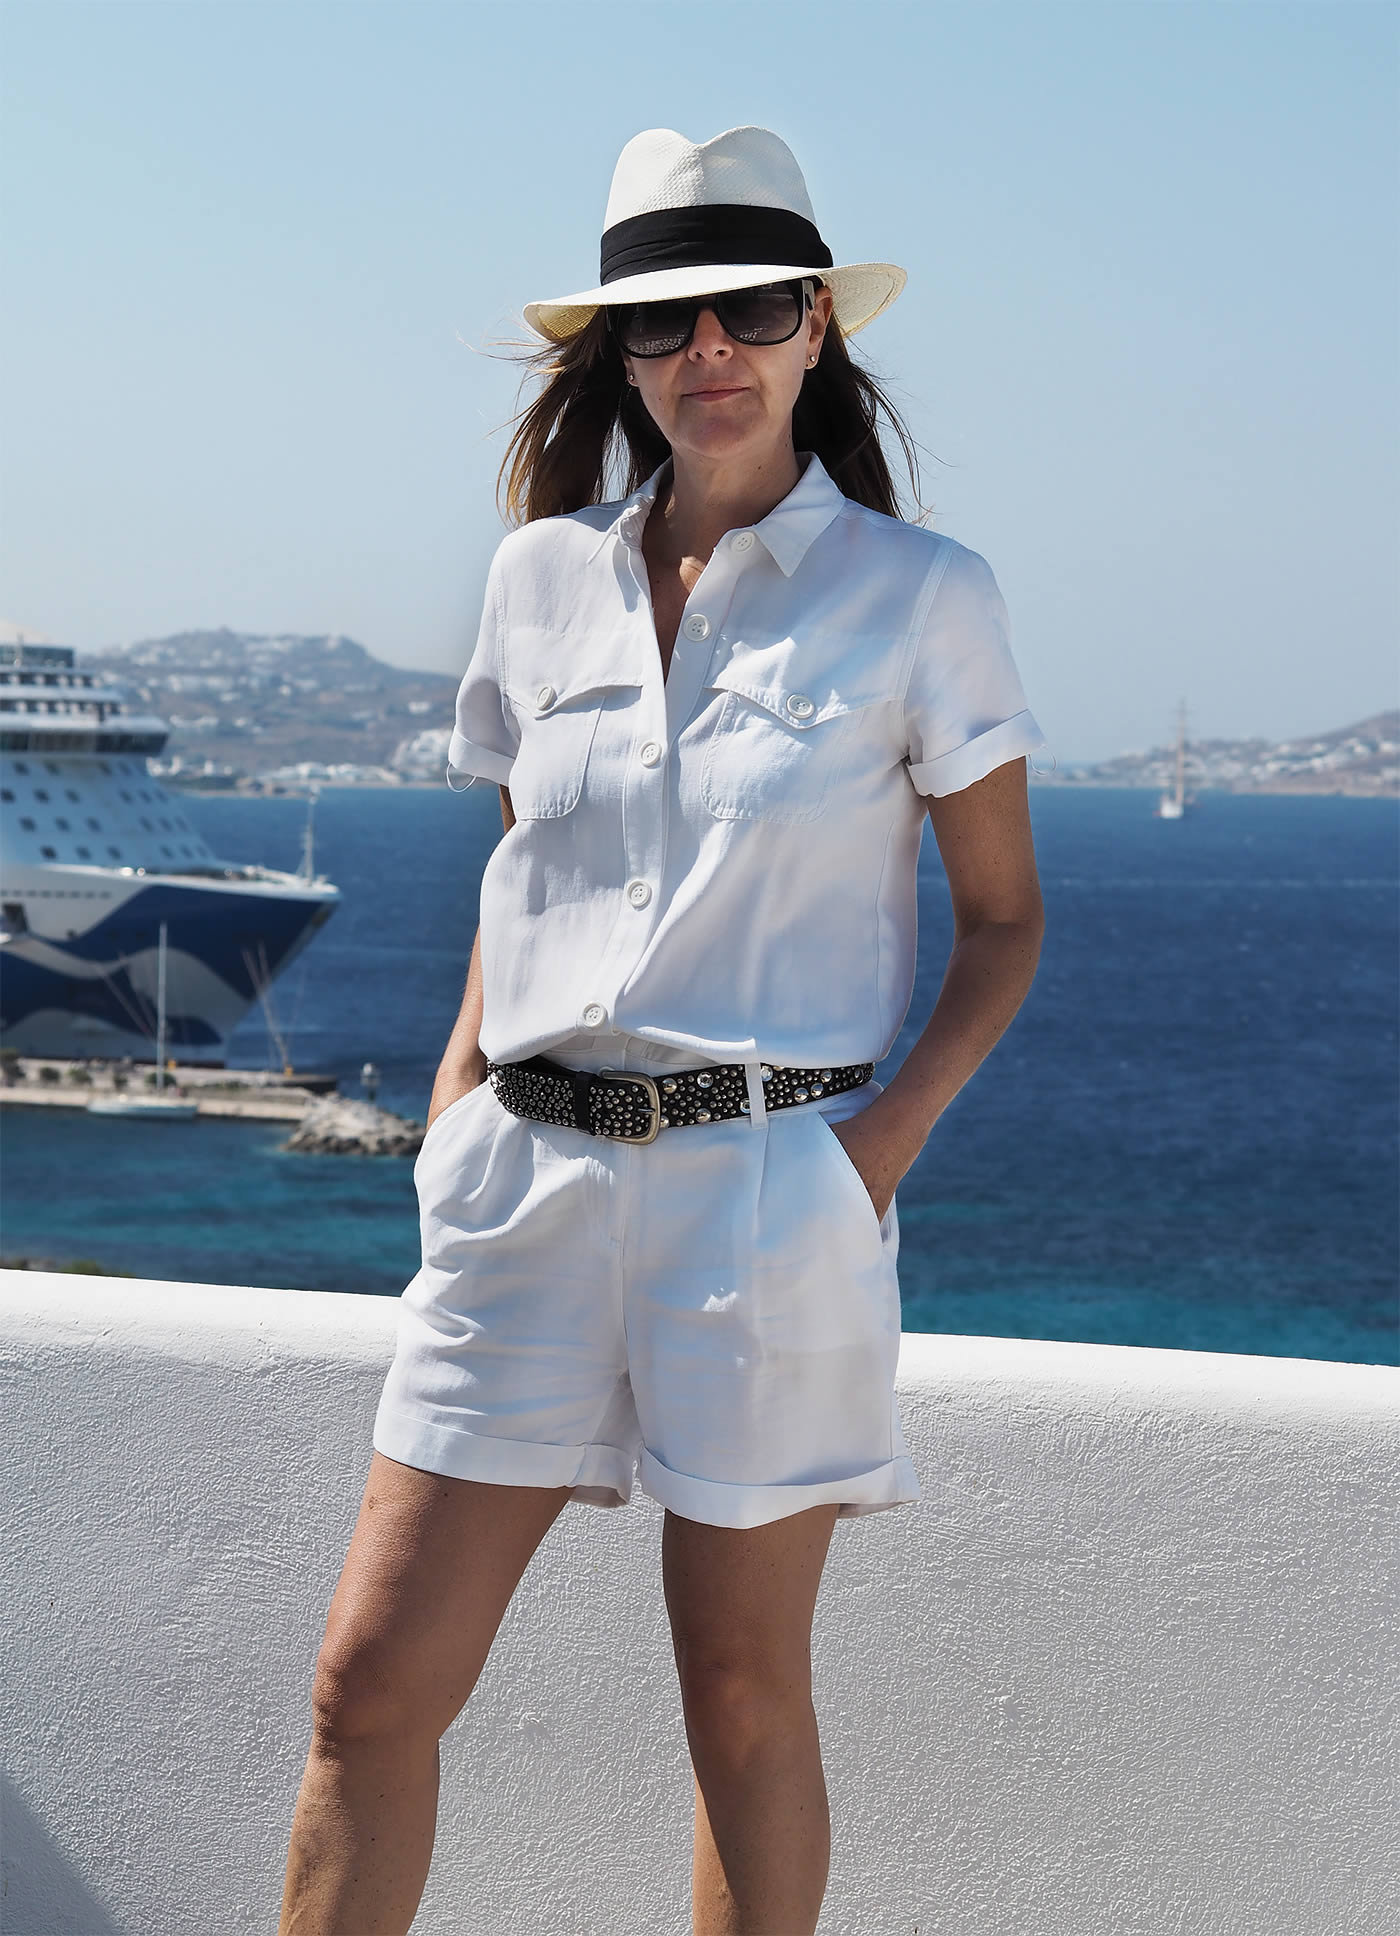 How to wear summer whites - Trilby Hat and shorts